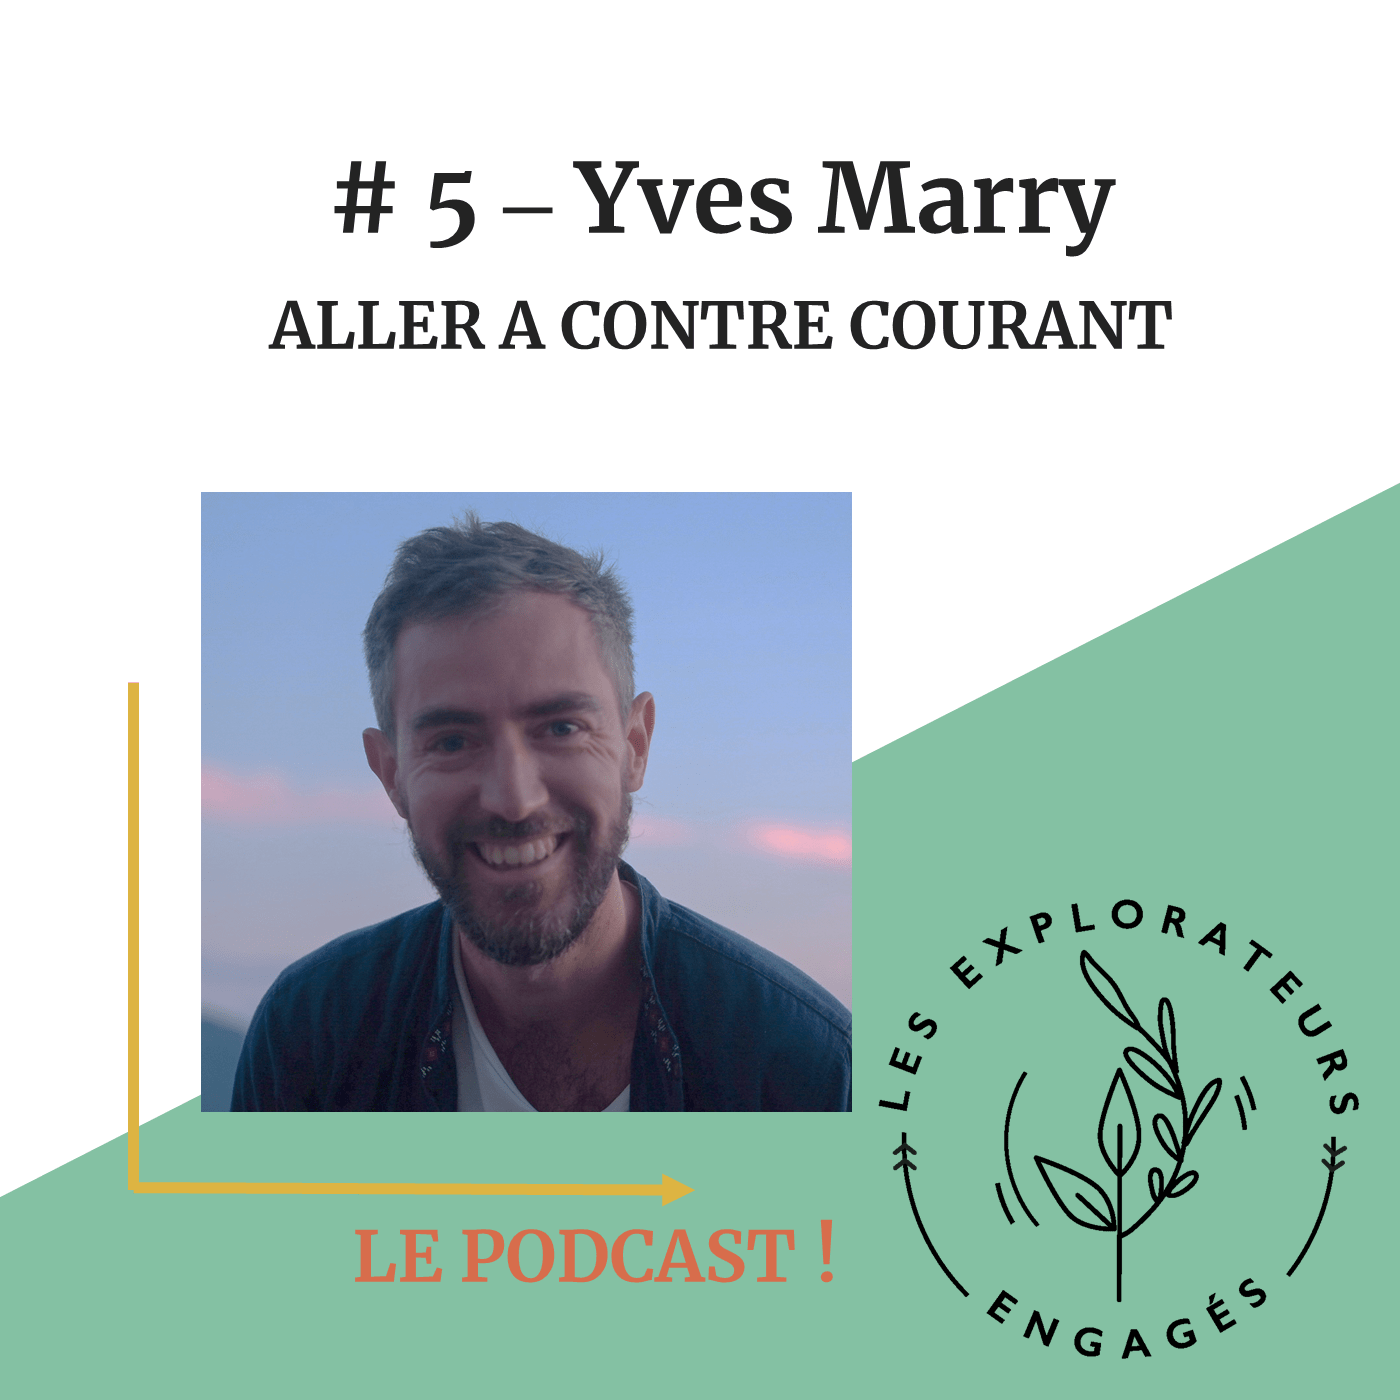 #5 Yves Marry – Aller à contre courant